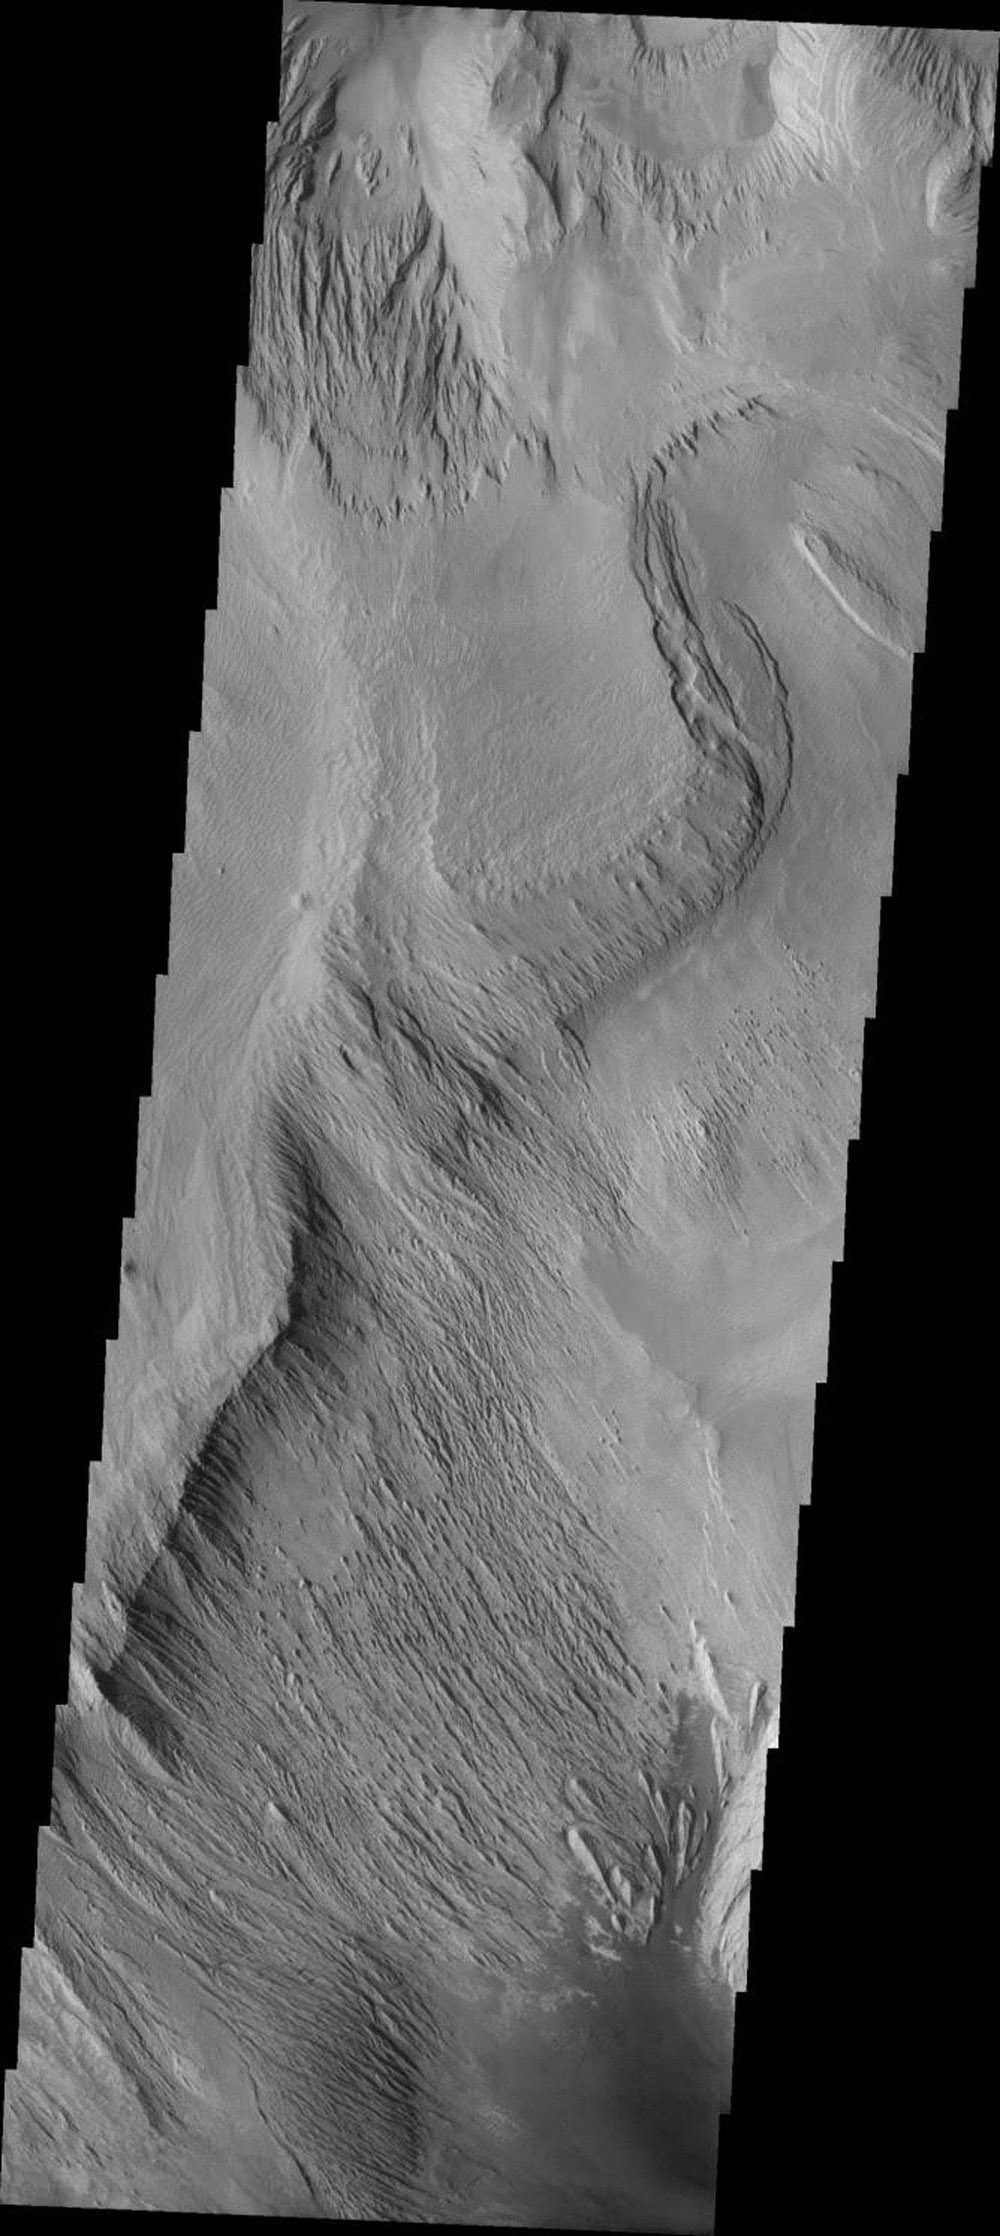 This image from NASA's 2001 Mars Odyssey released on Sept 15, 2004 shows the martian surface of Ophir Chasma, layered rock formations and wind etched rocks are present. The southern part of the image contains a dune field.